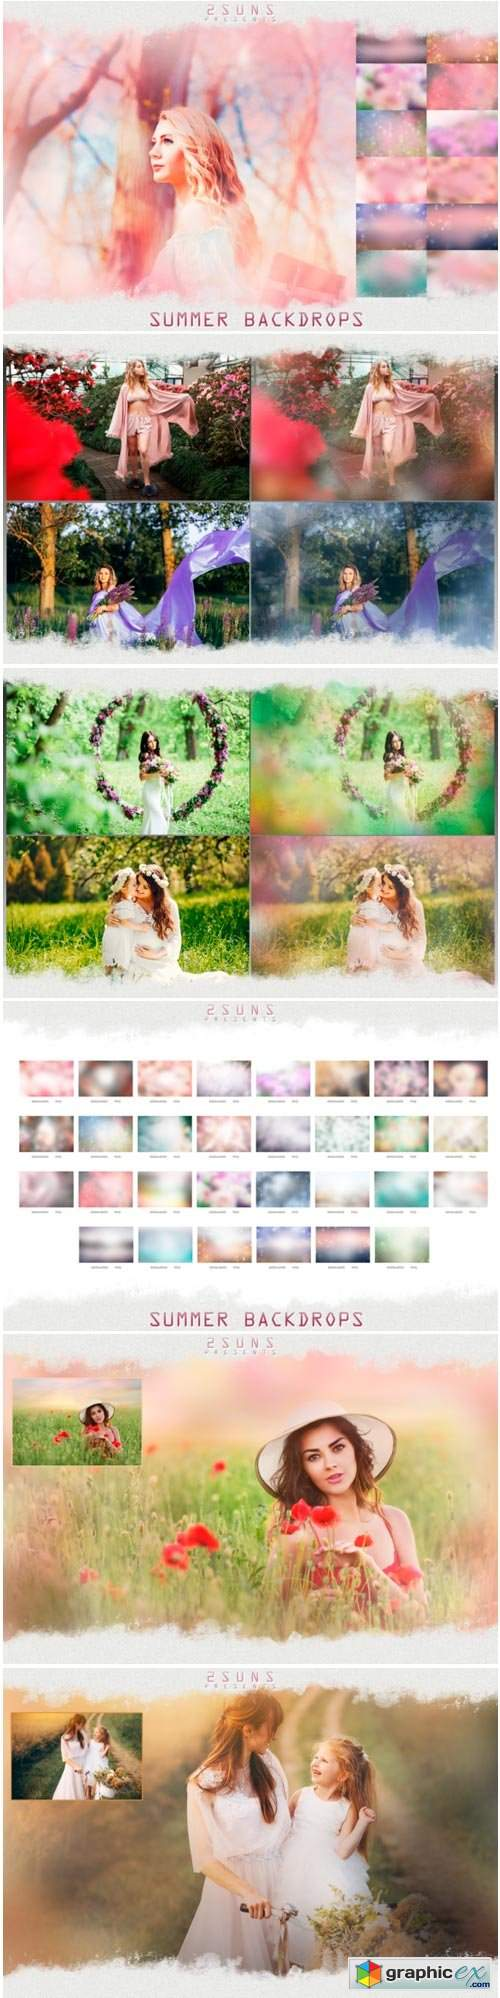 Photo Overlays Summer Backdrops